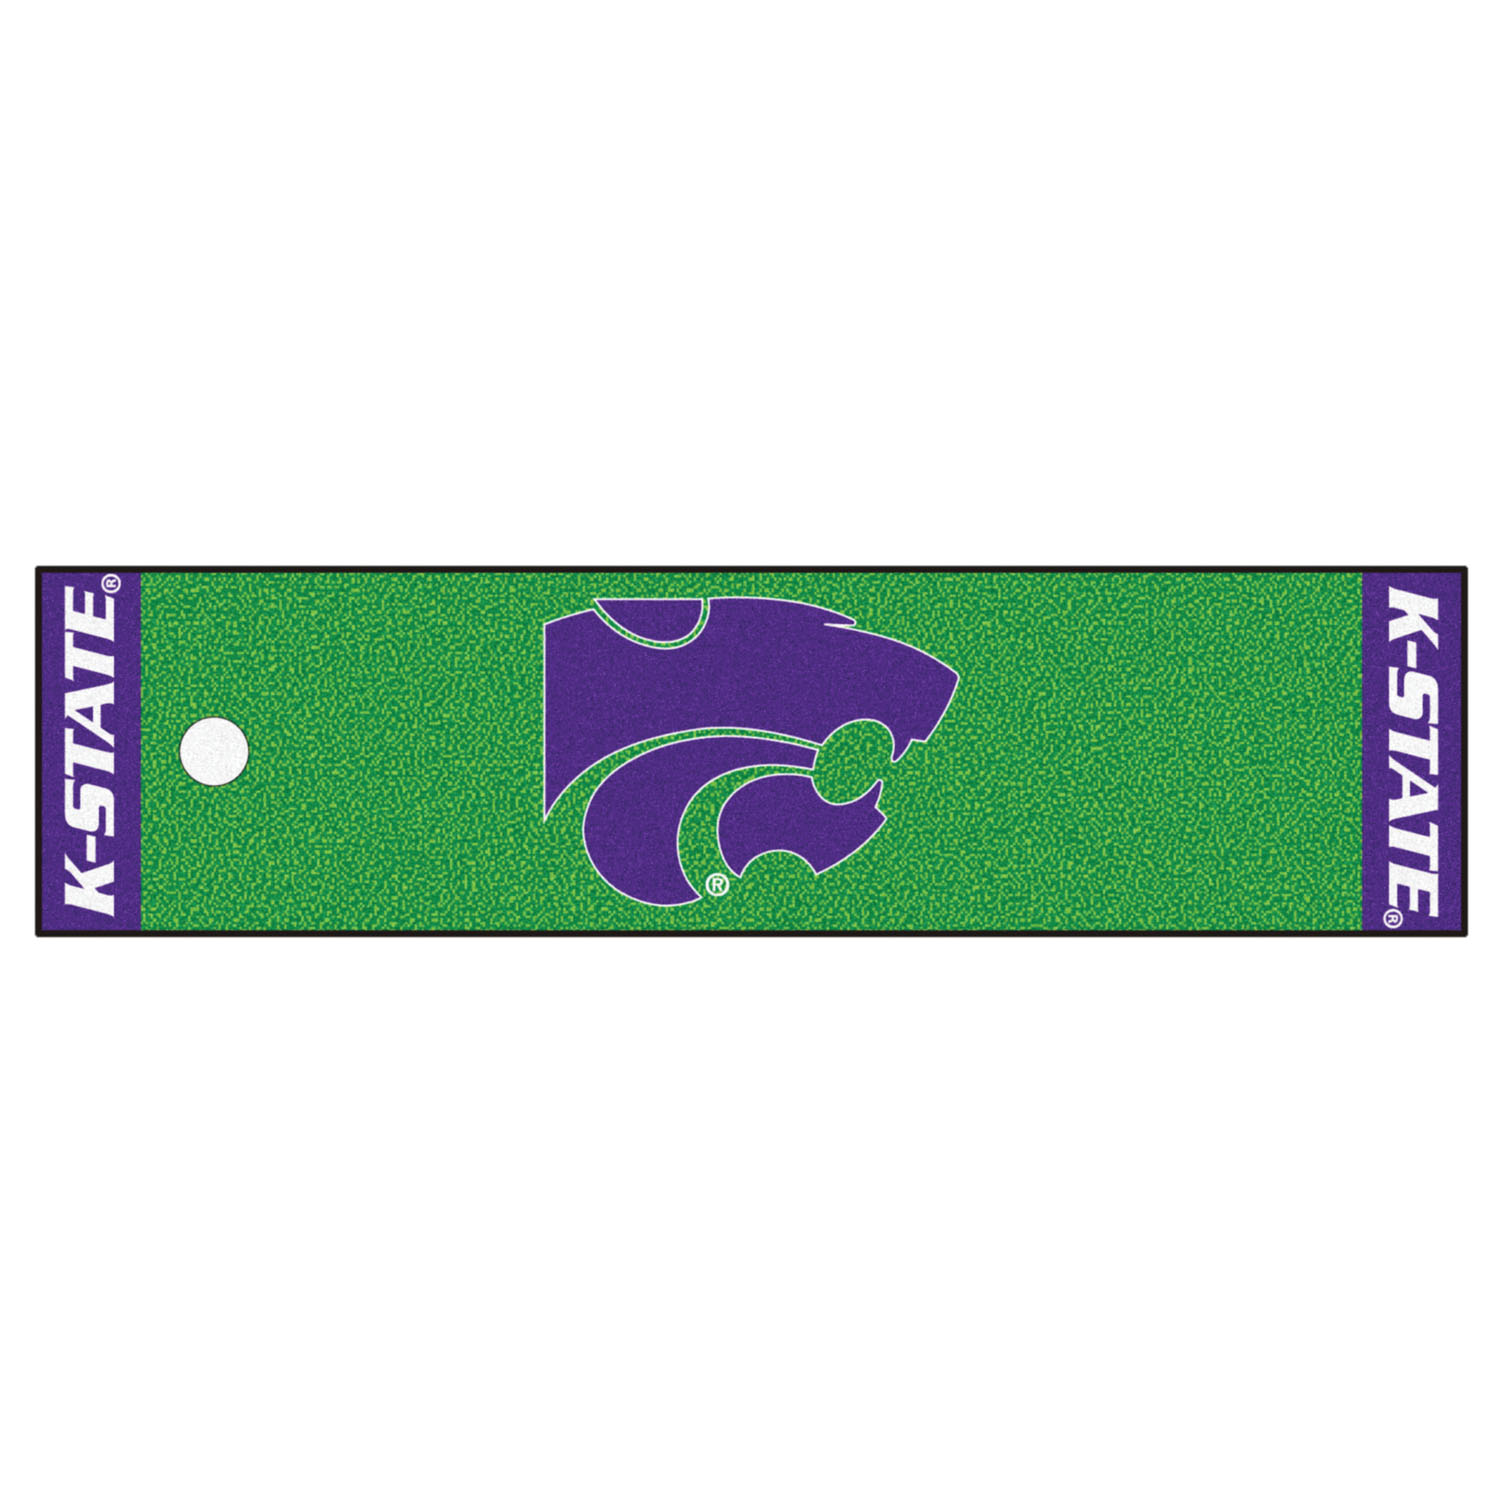 Fanmats Kansas State Putting Green Runner